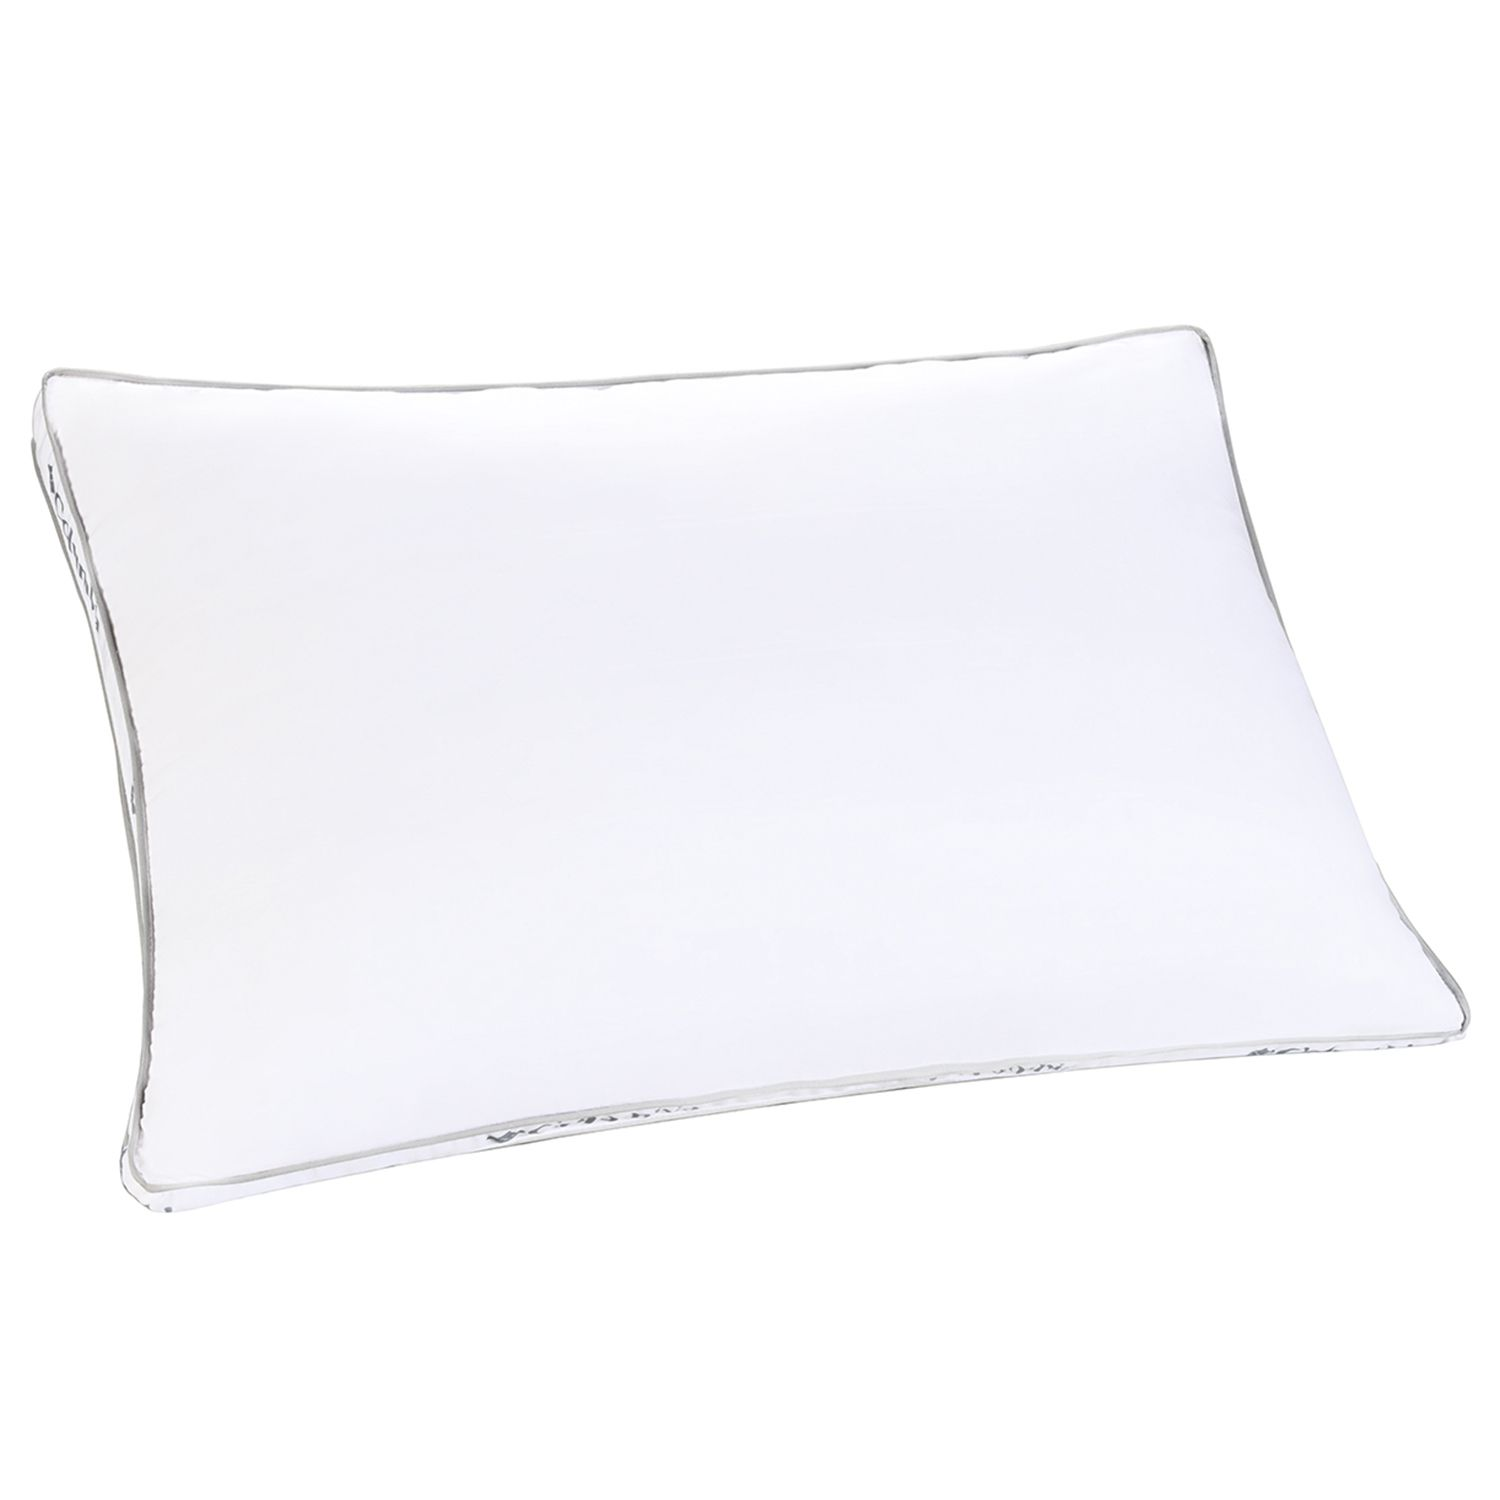 down pillows pillow bedroom alternative columbia bedding htm kohls decoration and gallery ideas performance bed